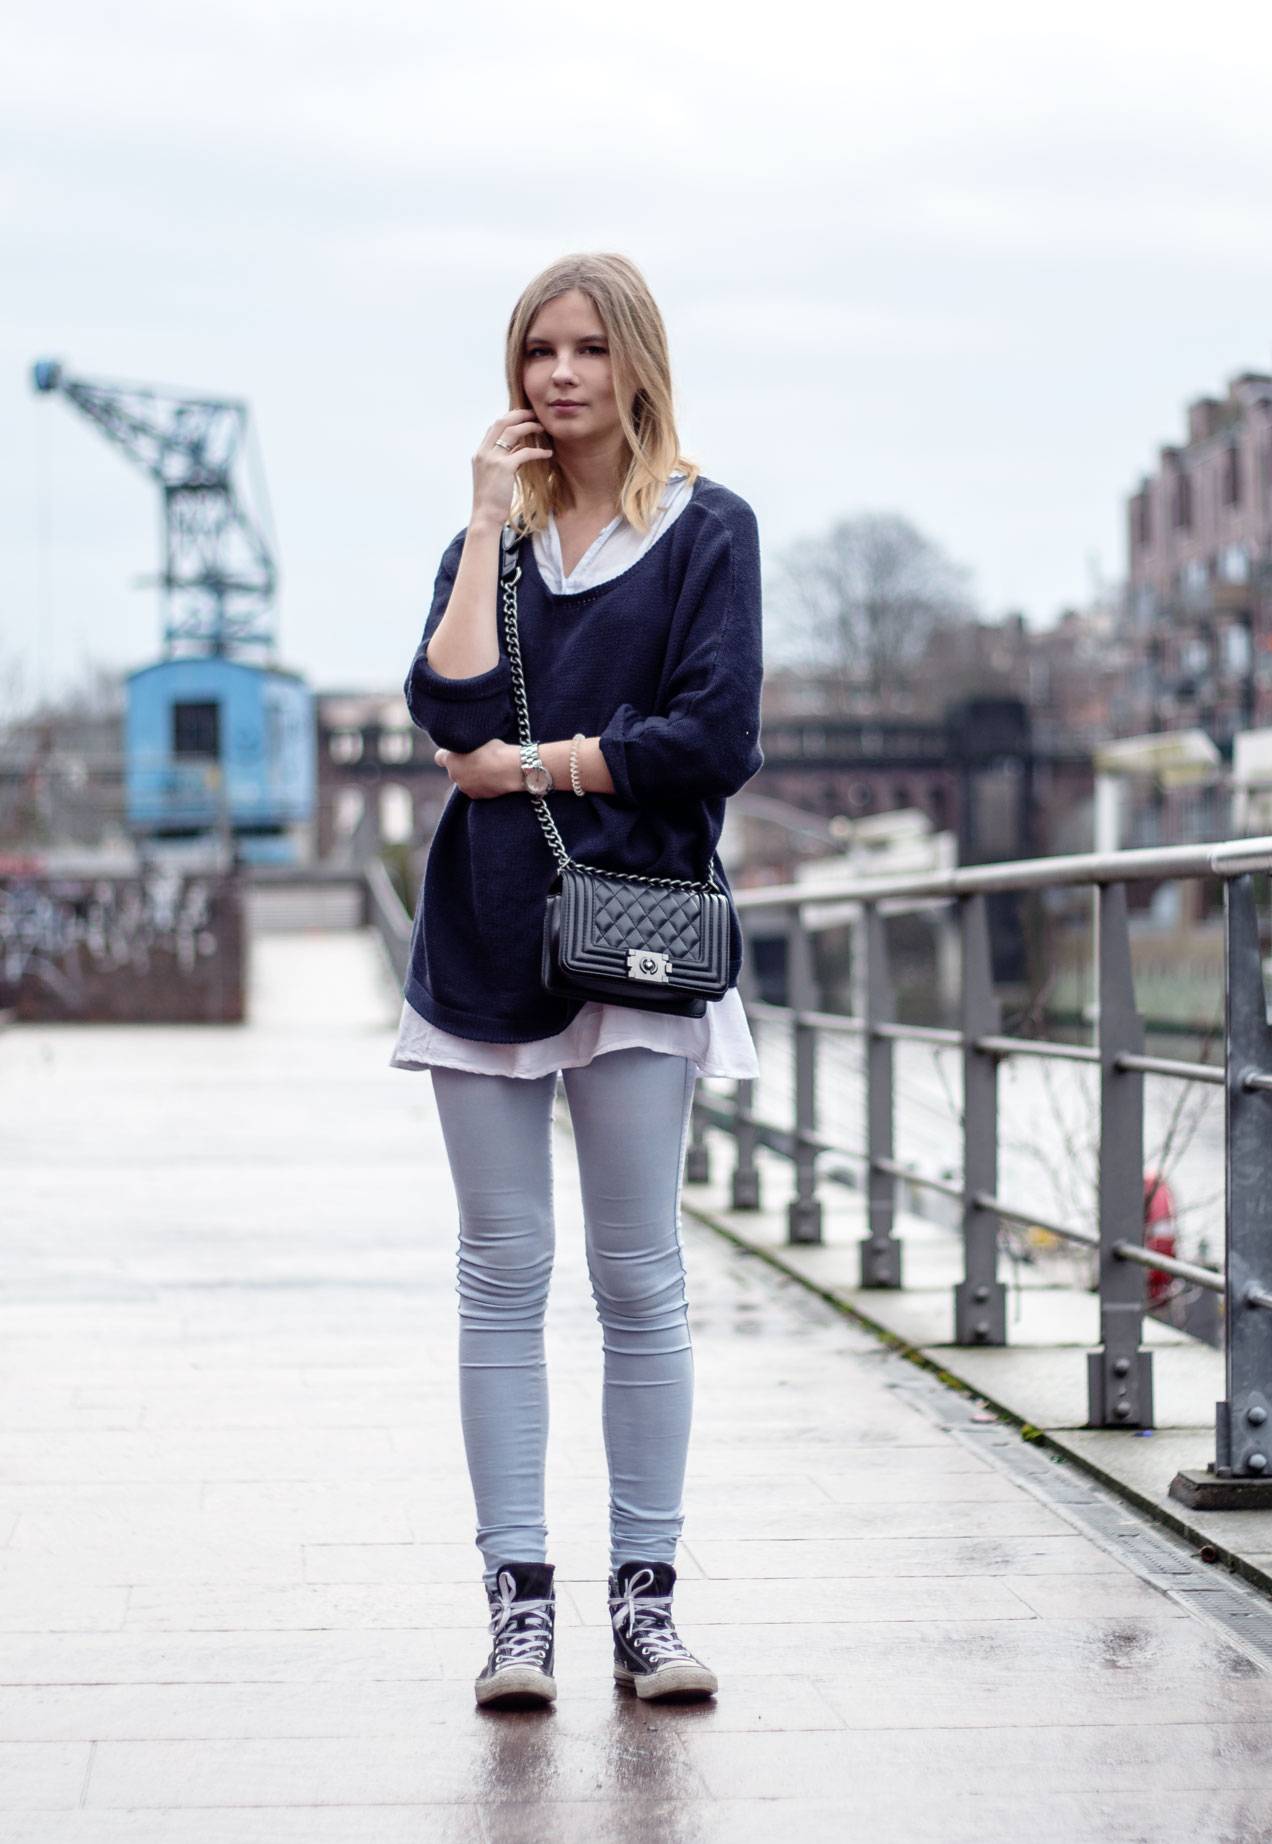 OUTFIT | Schon fast Frühling!